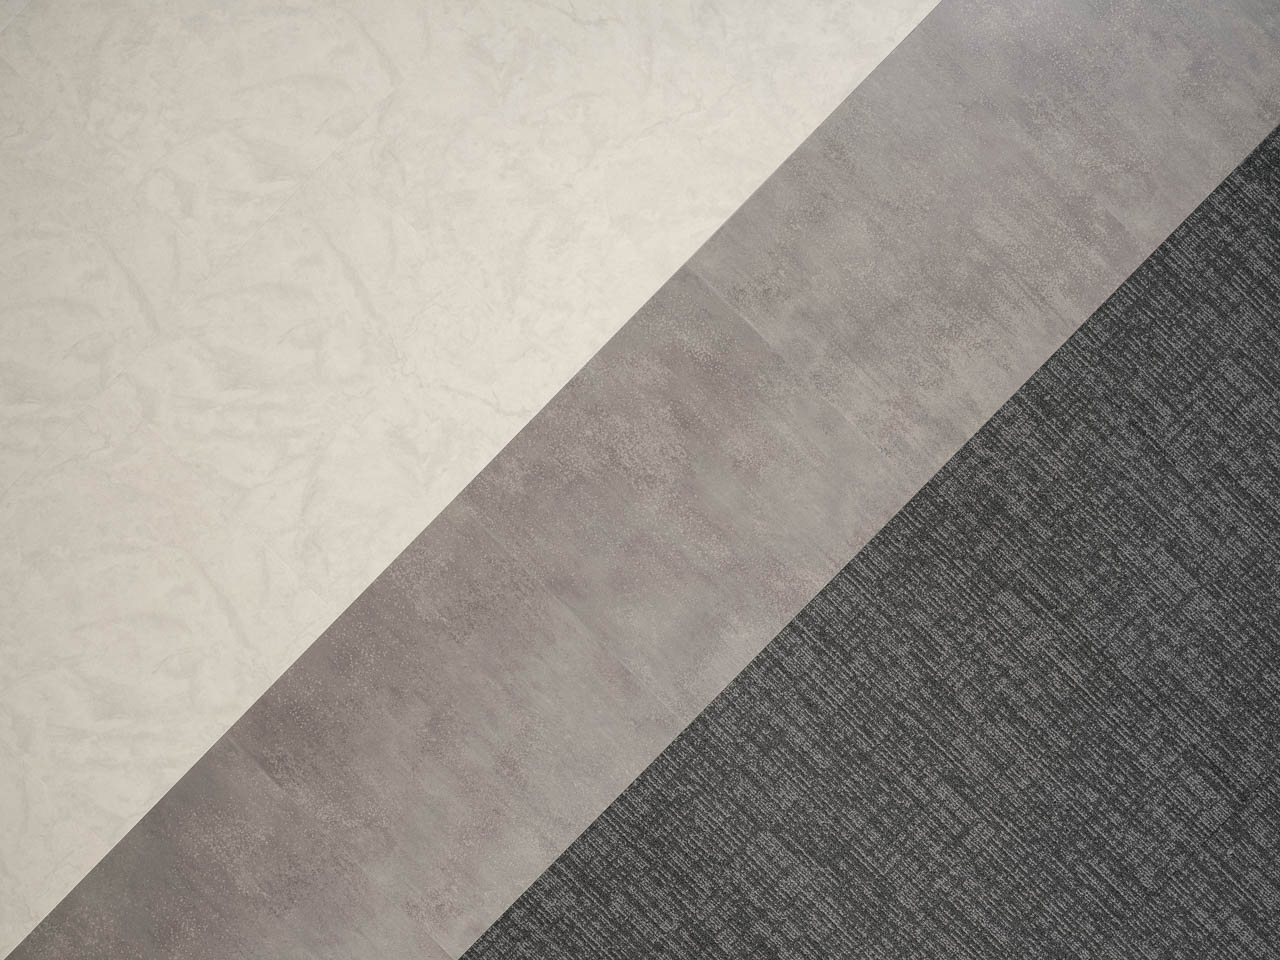 Color Anchor Tinker mit Ceramic Light und Metropolis Grey aus der Access Loose Lay LVT Collection